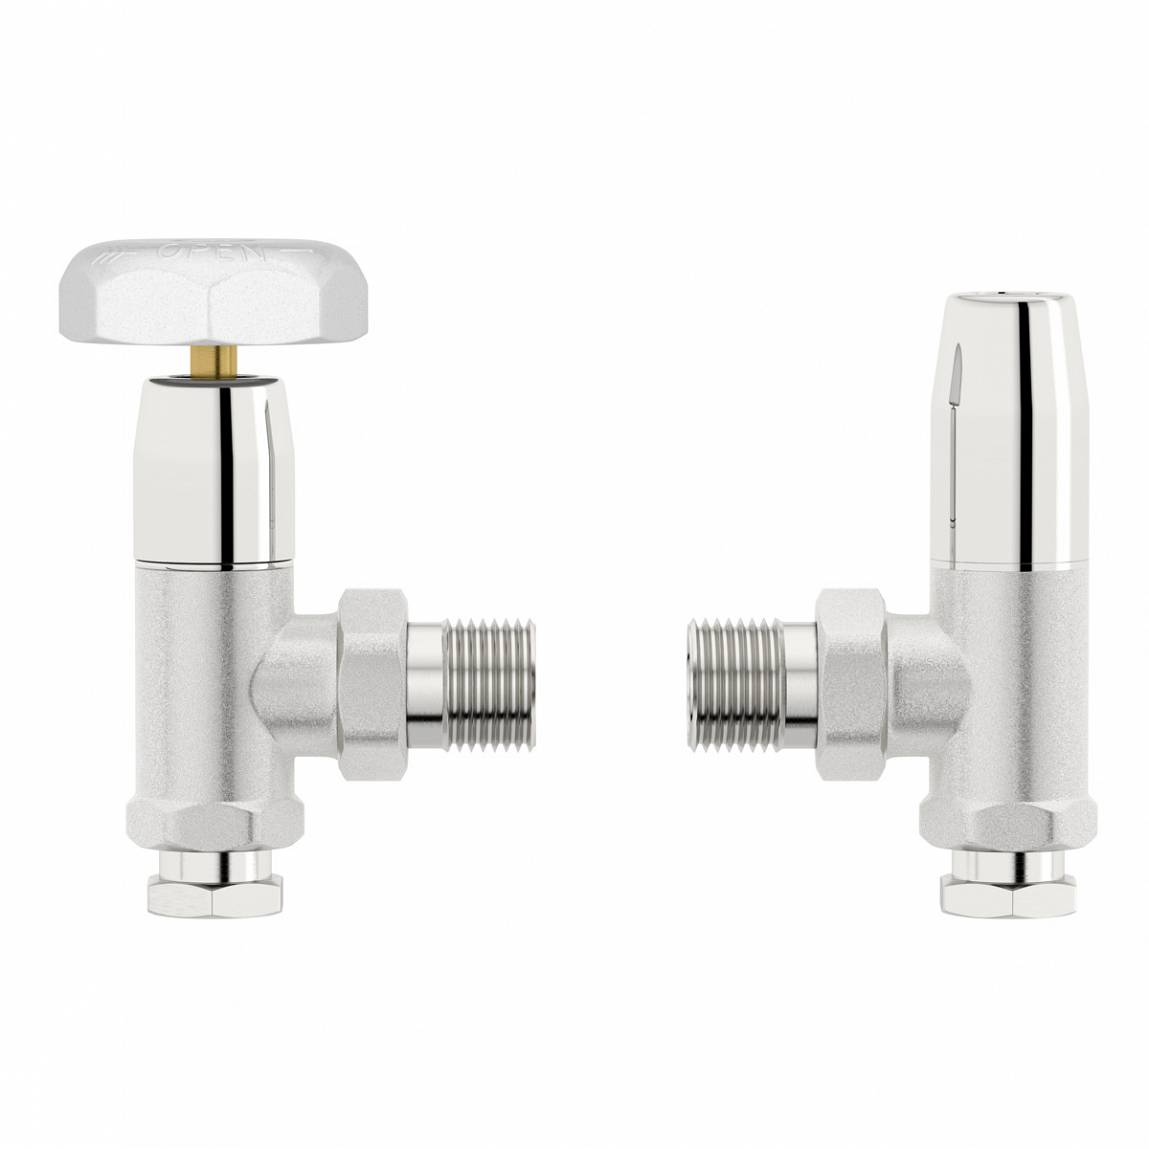 Image of Traditional Angled Radiator Valves with White Handle